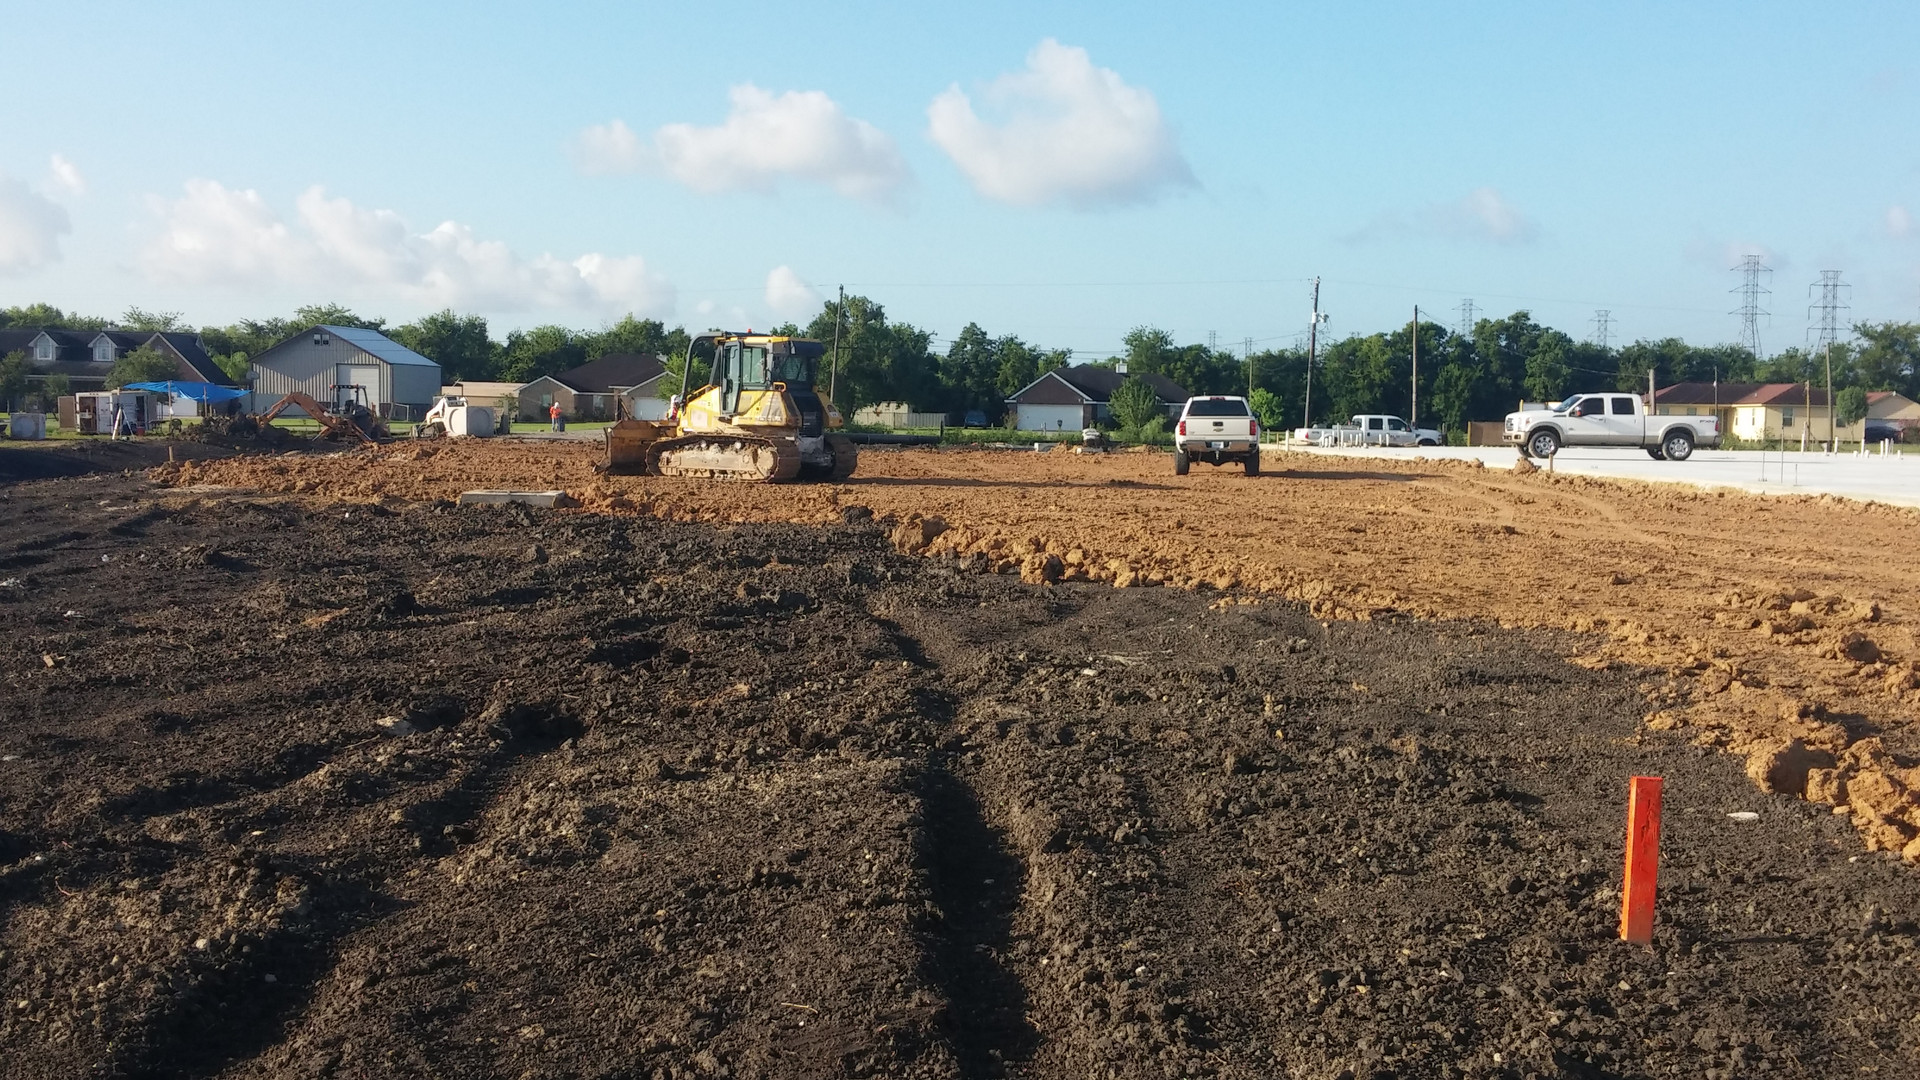 overall job site with concrete